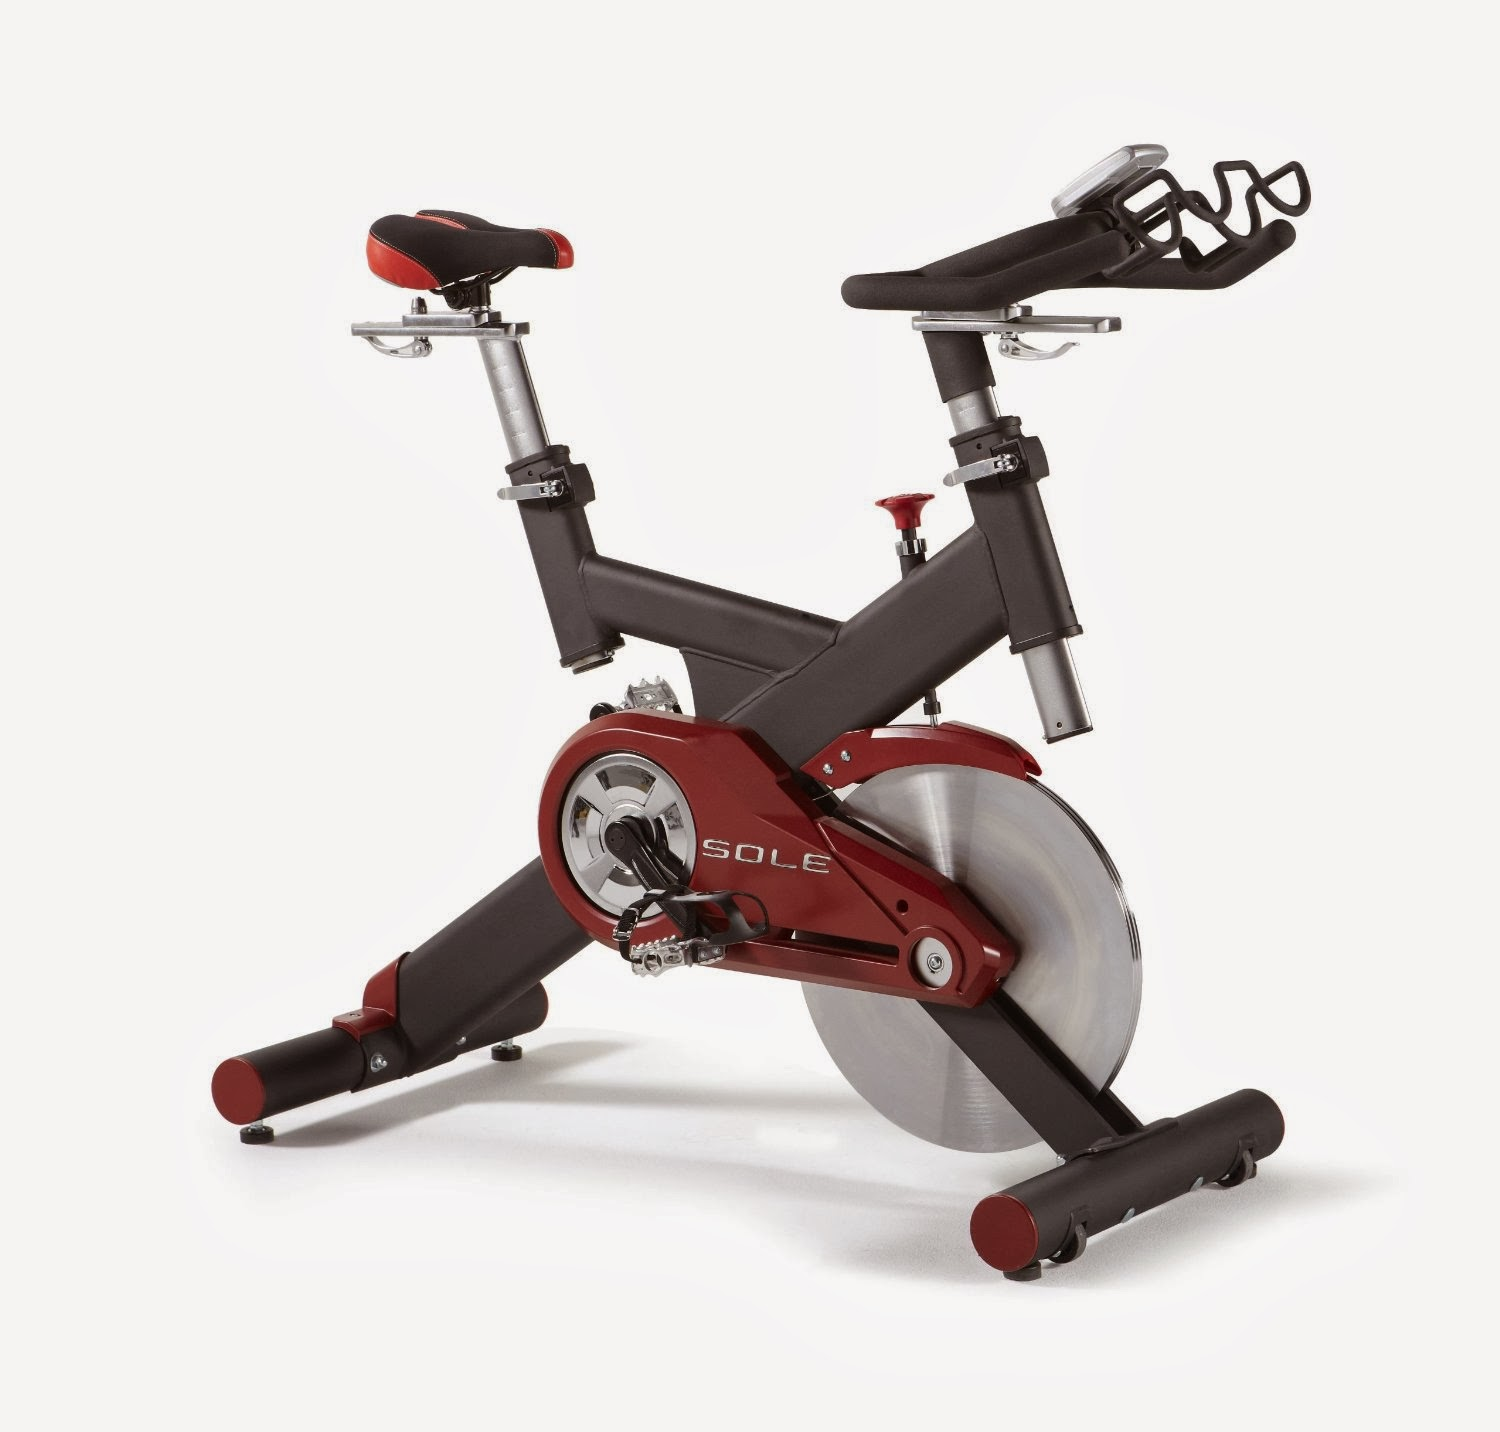 Exercise Bike Zone Sole Fitness Sb700 Spin Exercise Bike